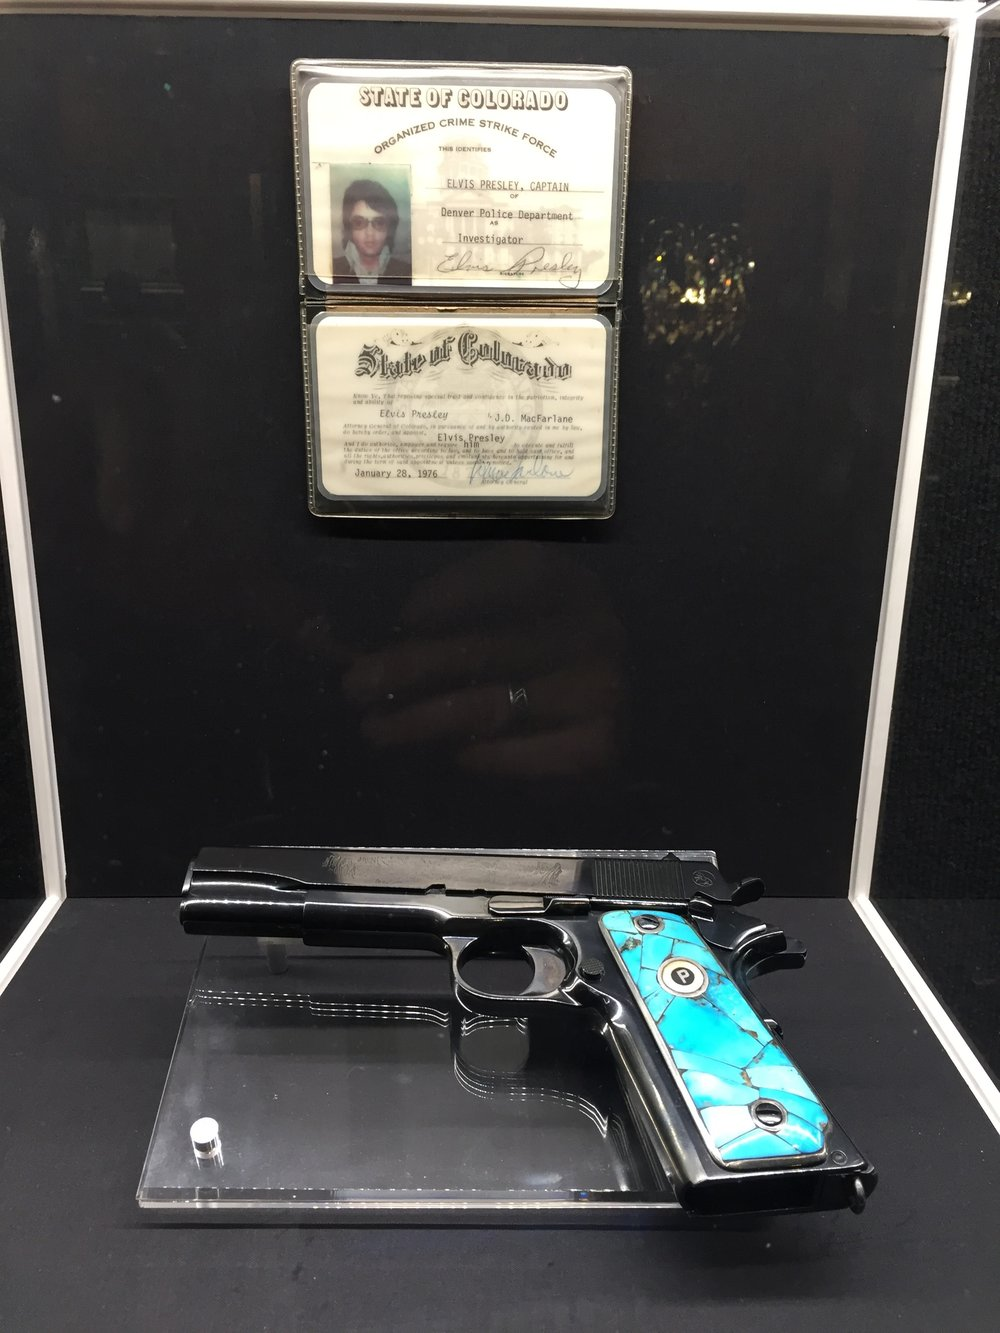 Elvis' handgun, along with his honorary membership in Colorado's Organized Crime Strike Force.